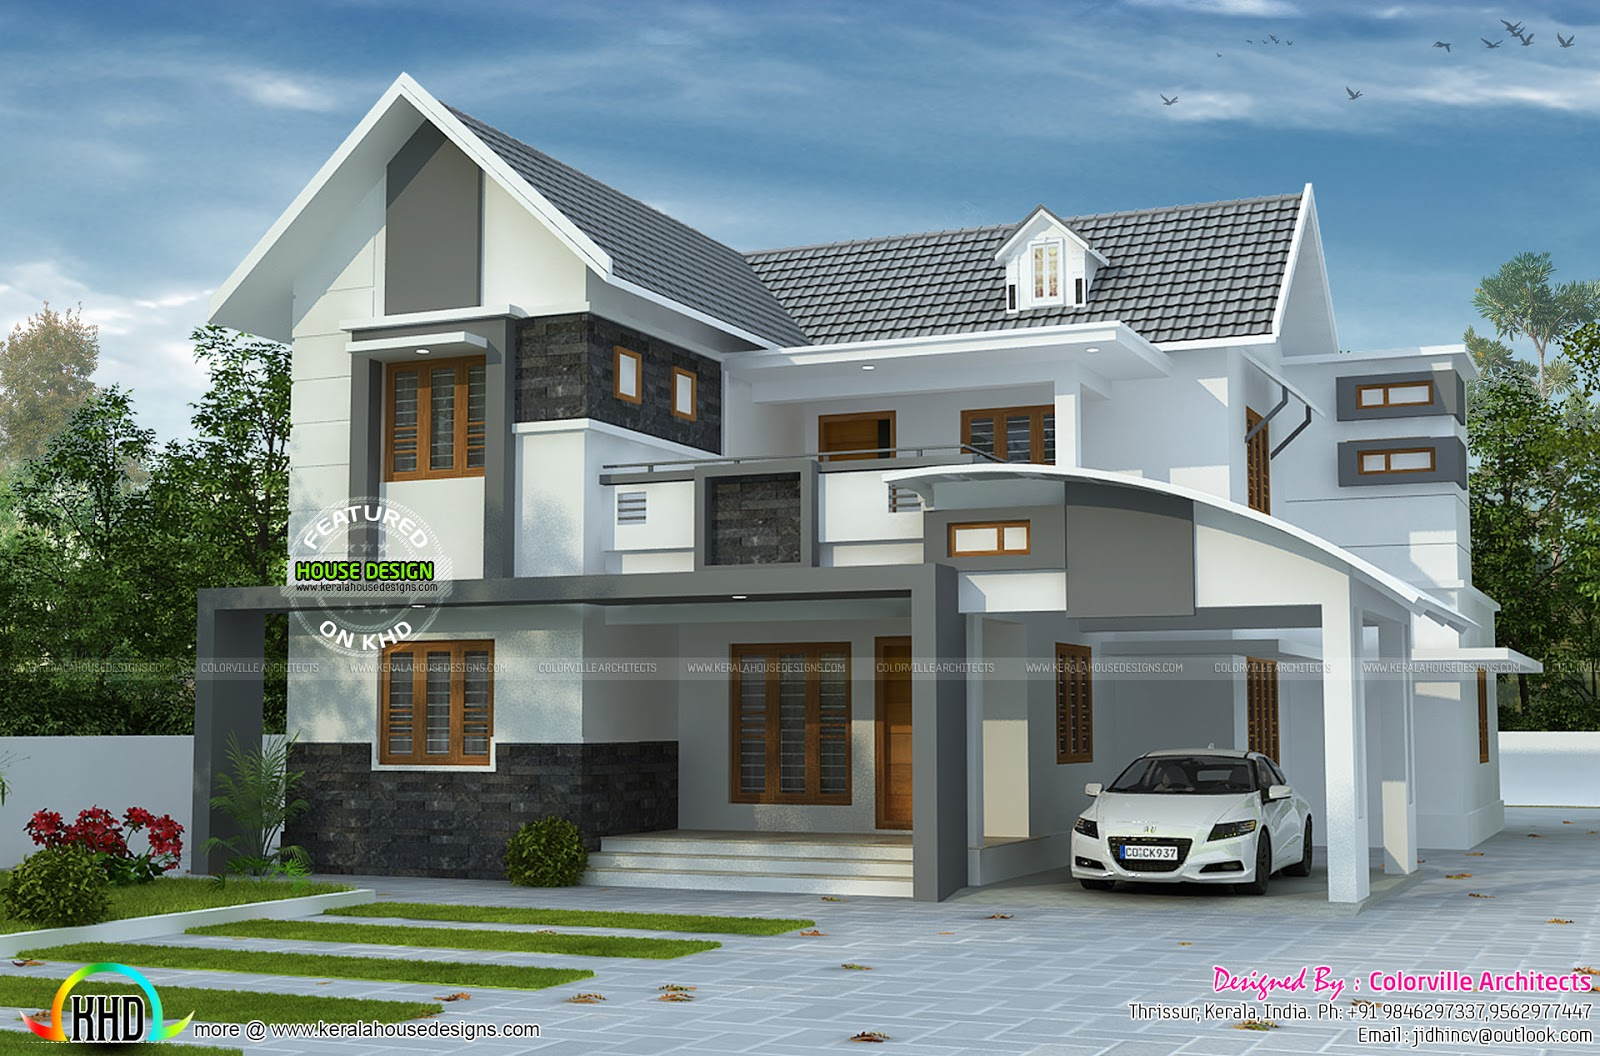 house plan by colorville architects kerala home design